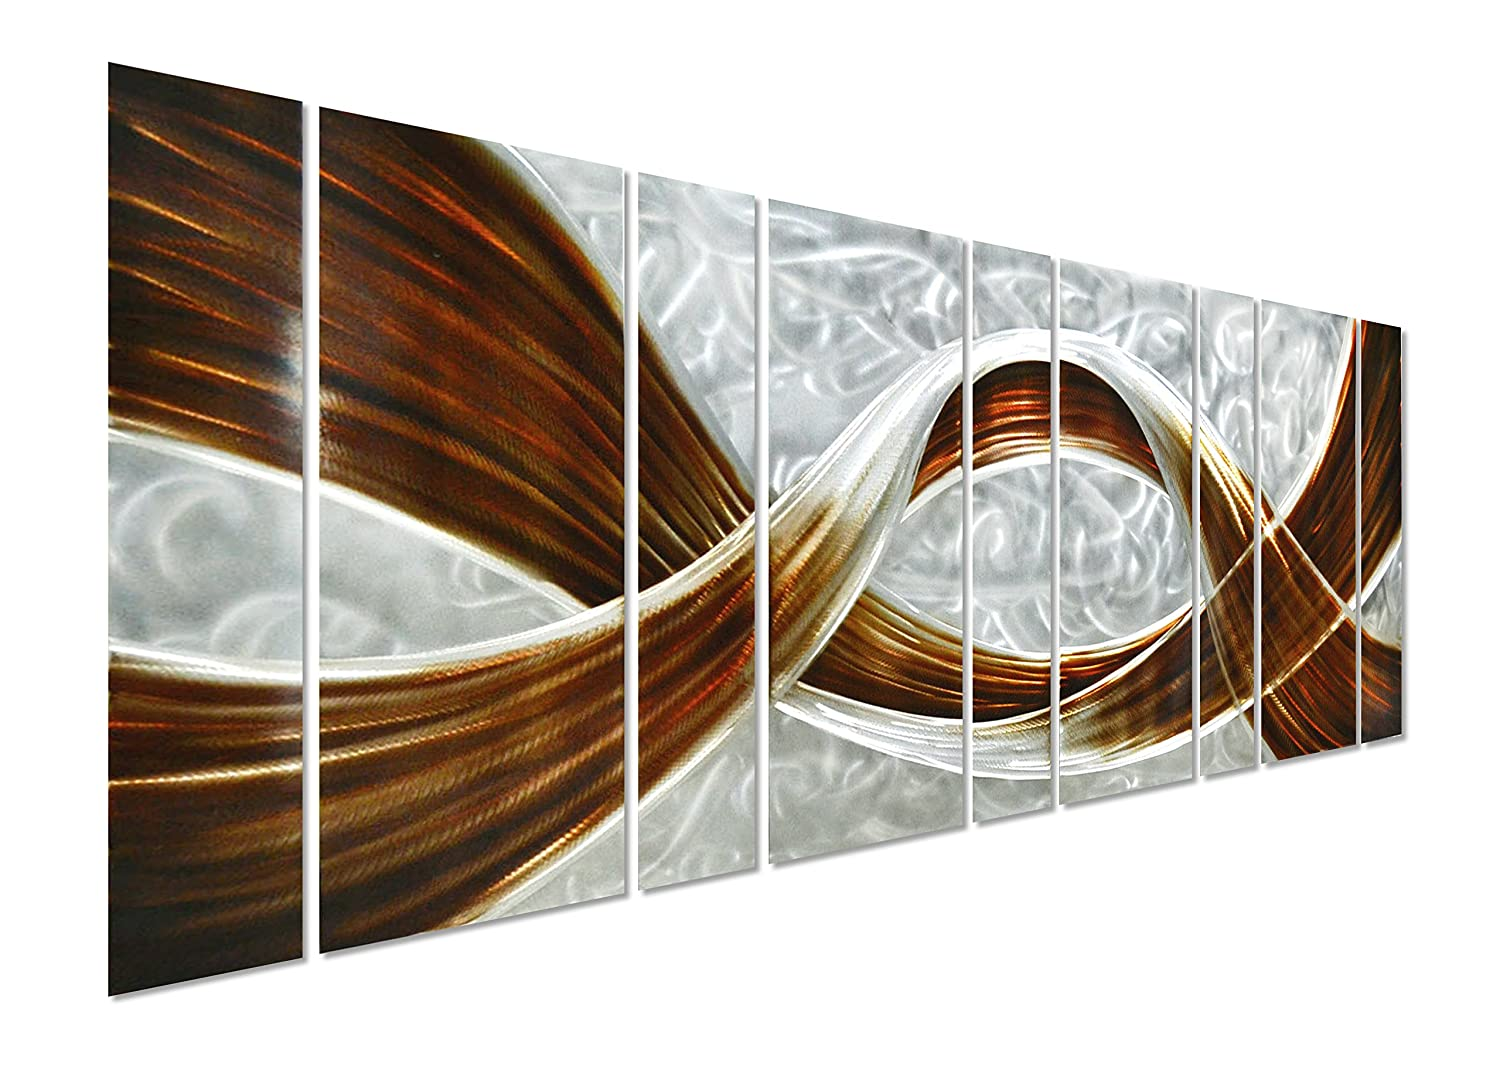 Amazon.com: Pure Art Caramel Desire Metal Wall Art, Giant Scale Metal Wall  Decor In Abstract Design, 3D Wall Art For Contemporary Decor, 9 Panels  Measures ...